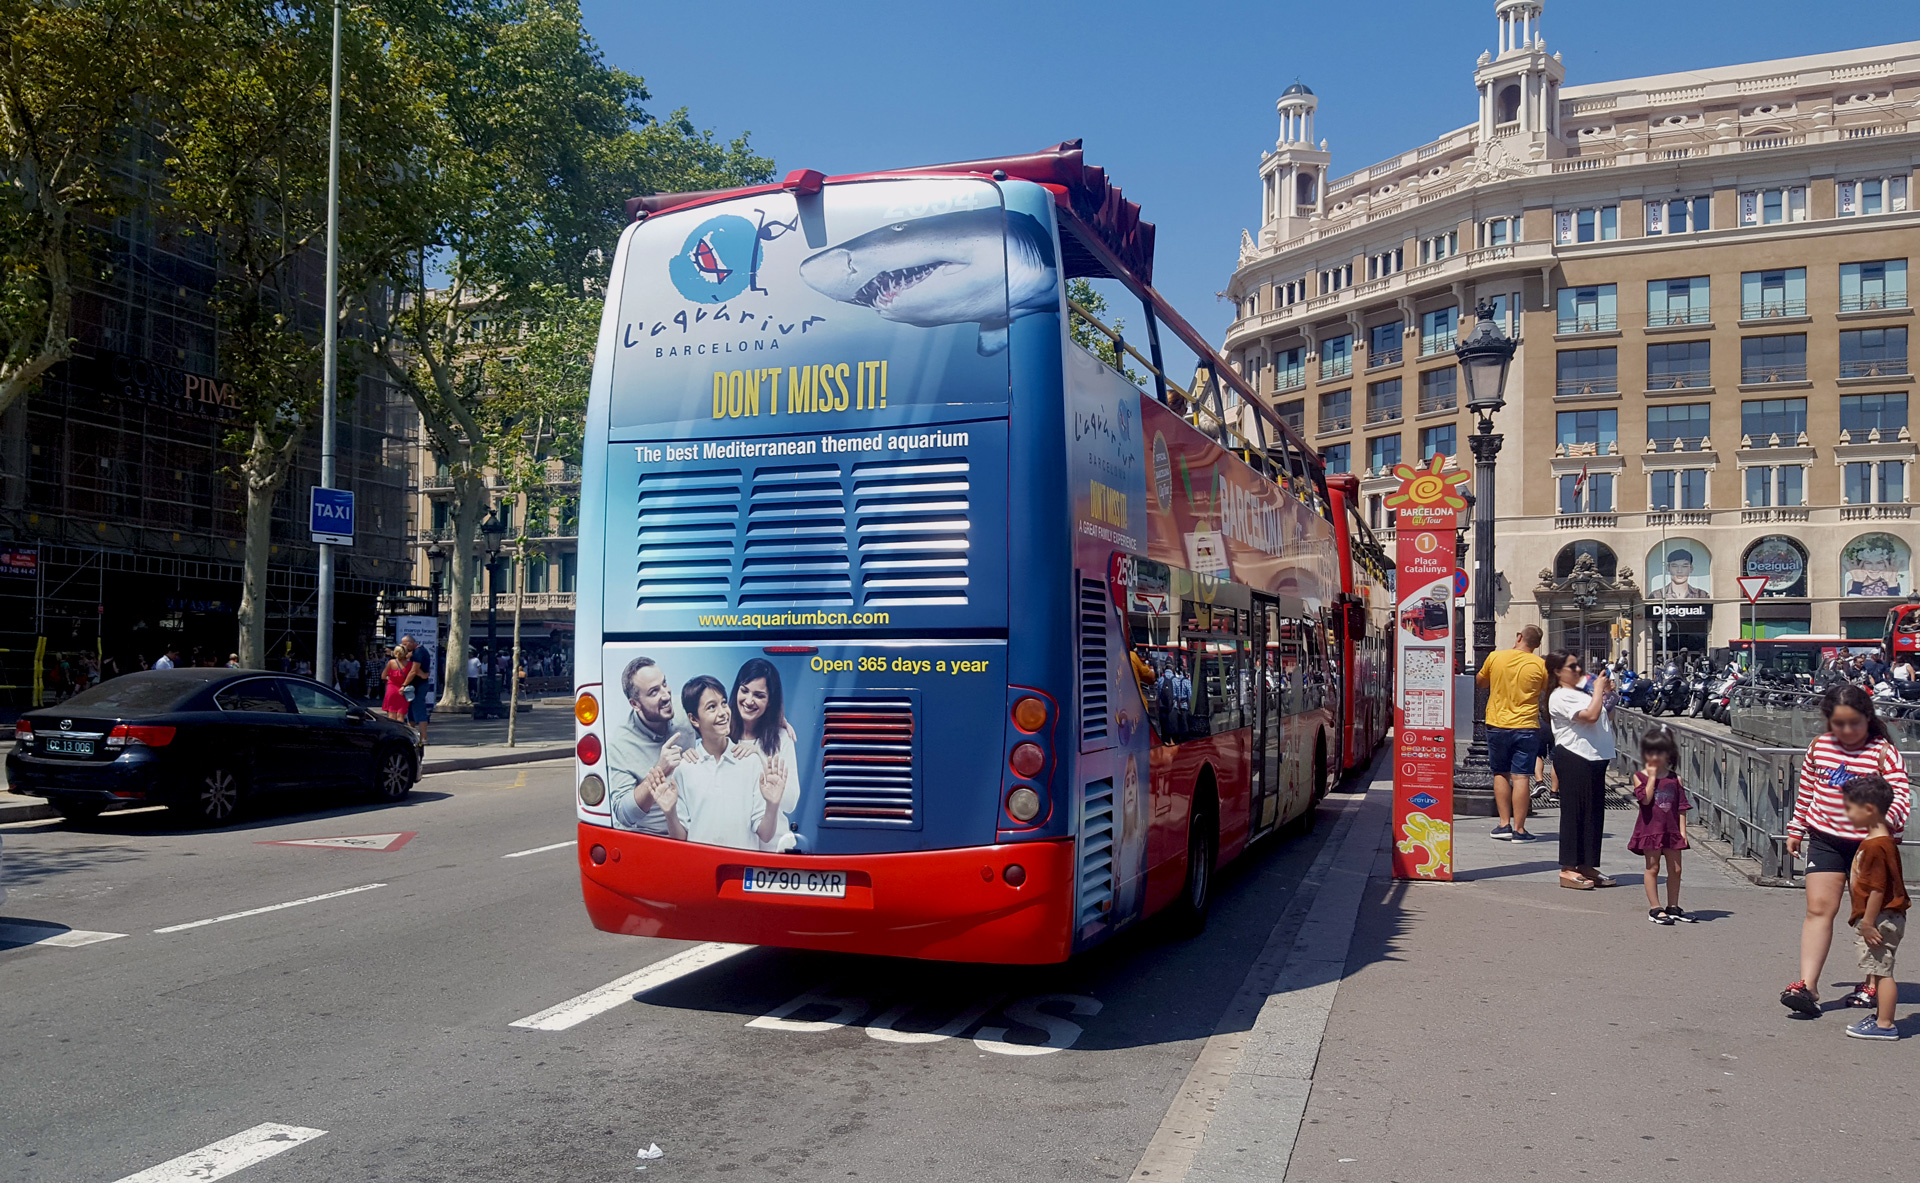 Barcelona sightseeing bus advertising